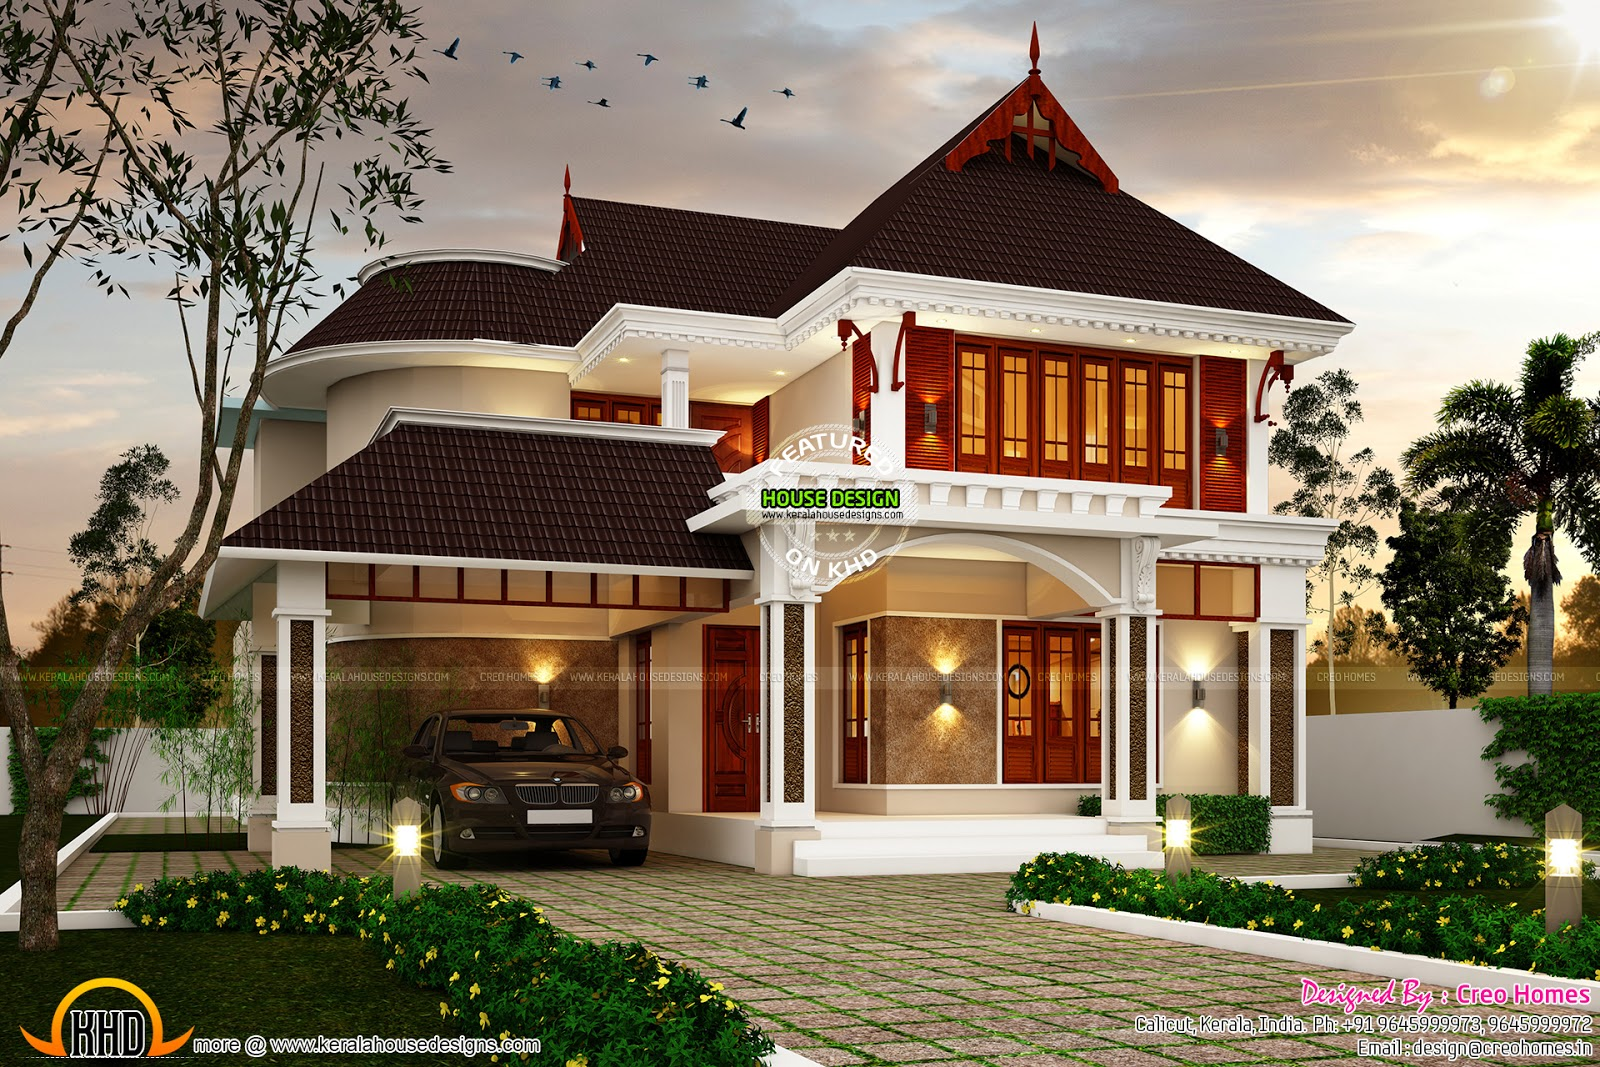 Superb dream house plan kerala home design and floor plans for Dream floor plans